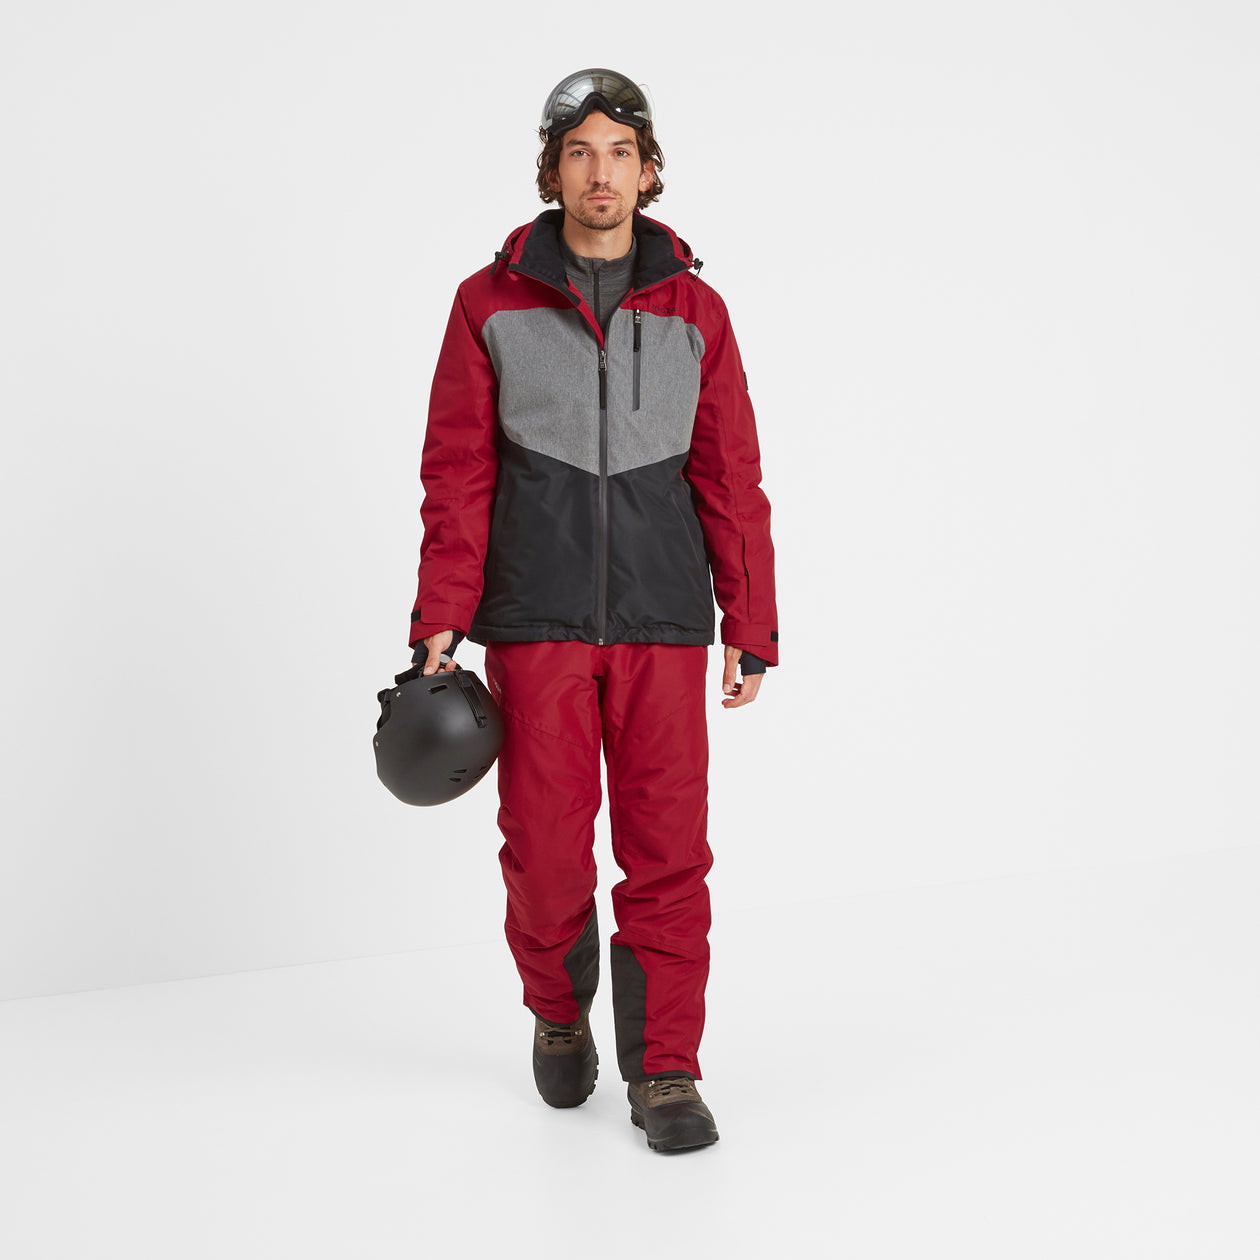 Blade Mens Waterproof Insulated Ski Jacket - Chilli/Grey/Black image 4